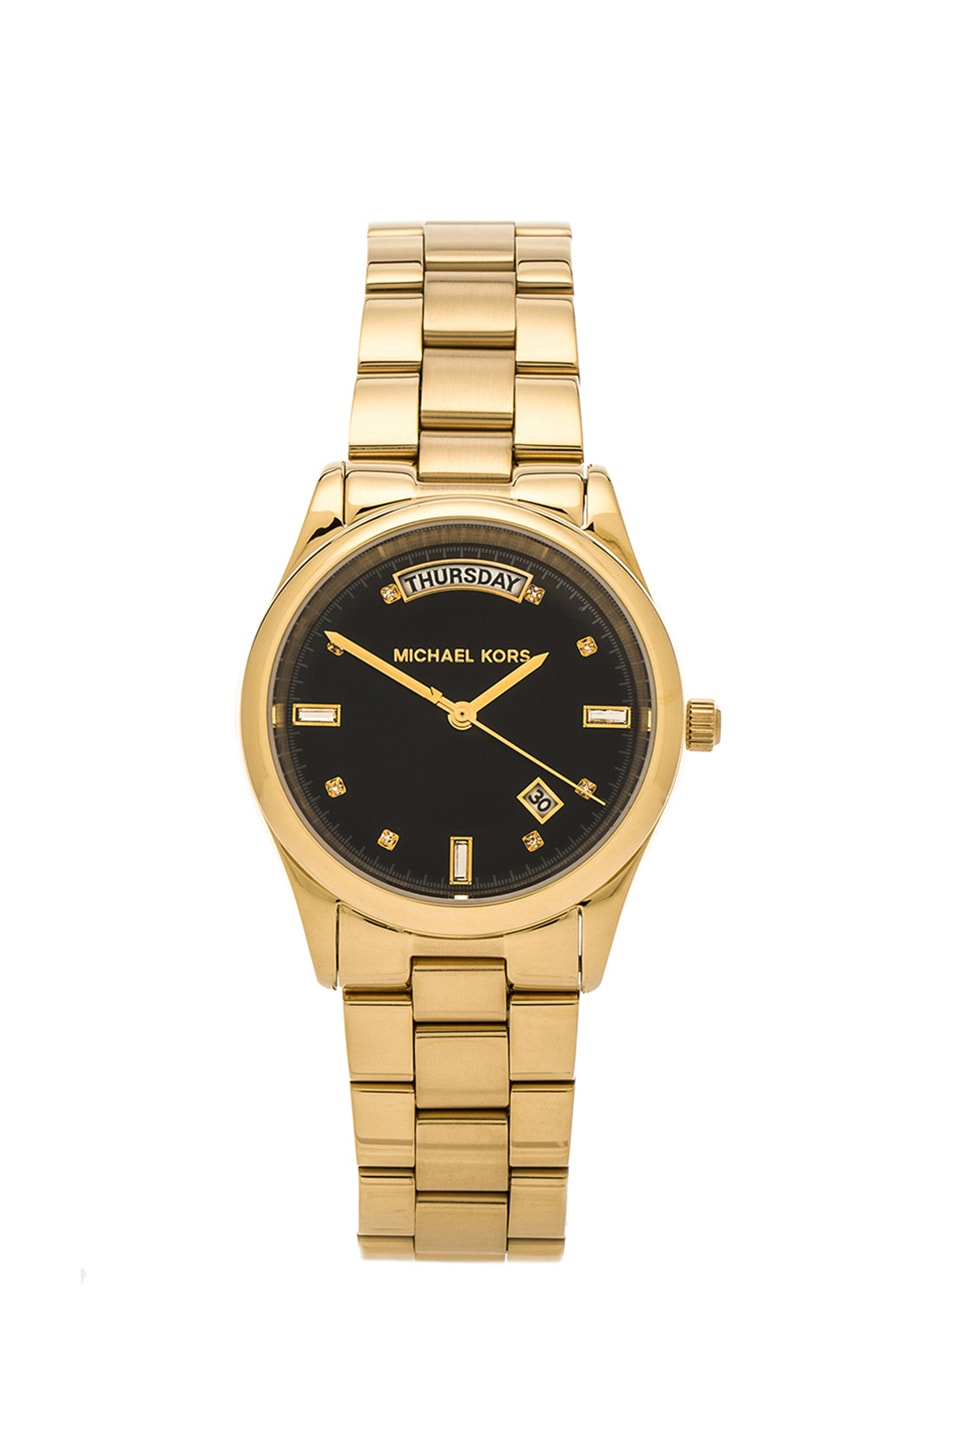 Michael Kors Colette in Gold & Charcoal